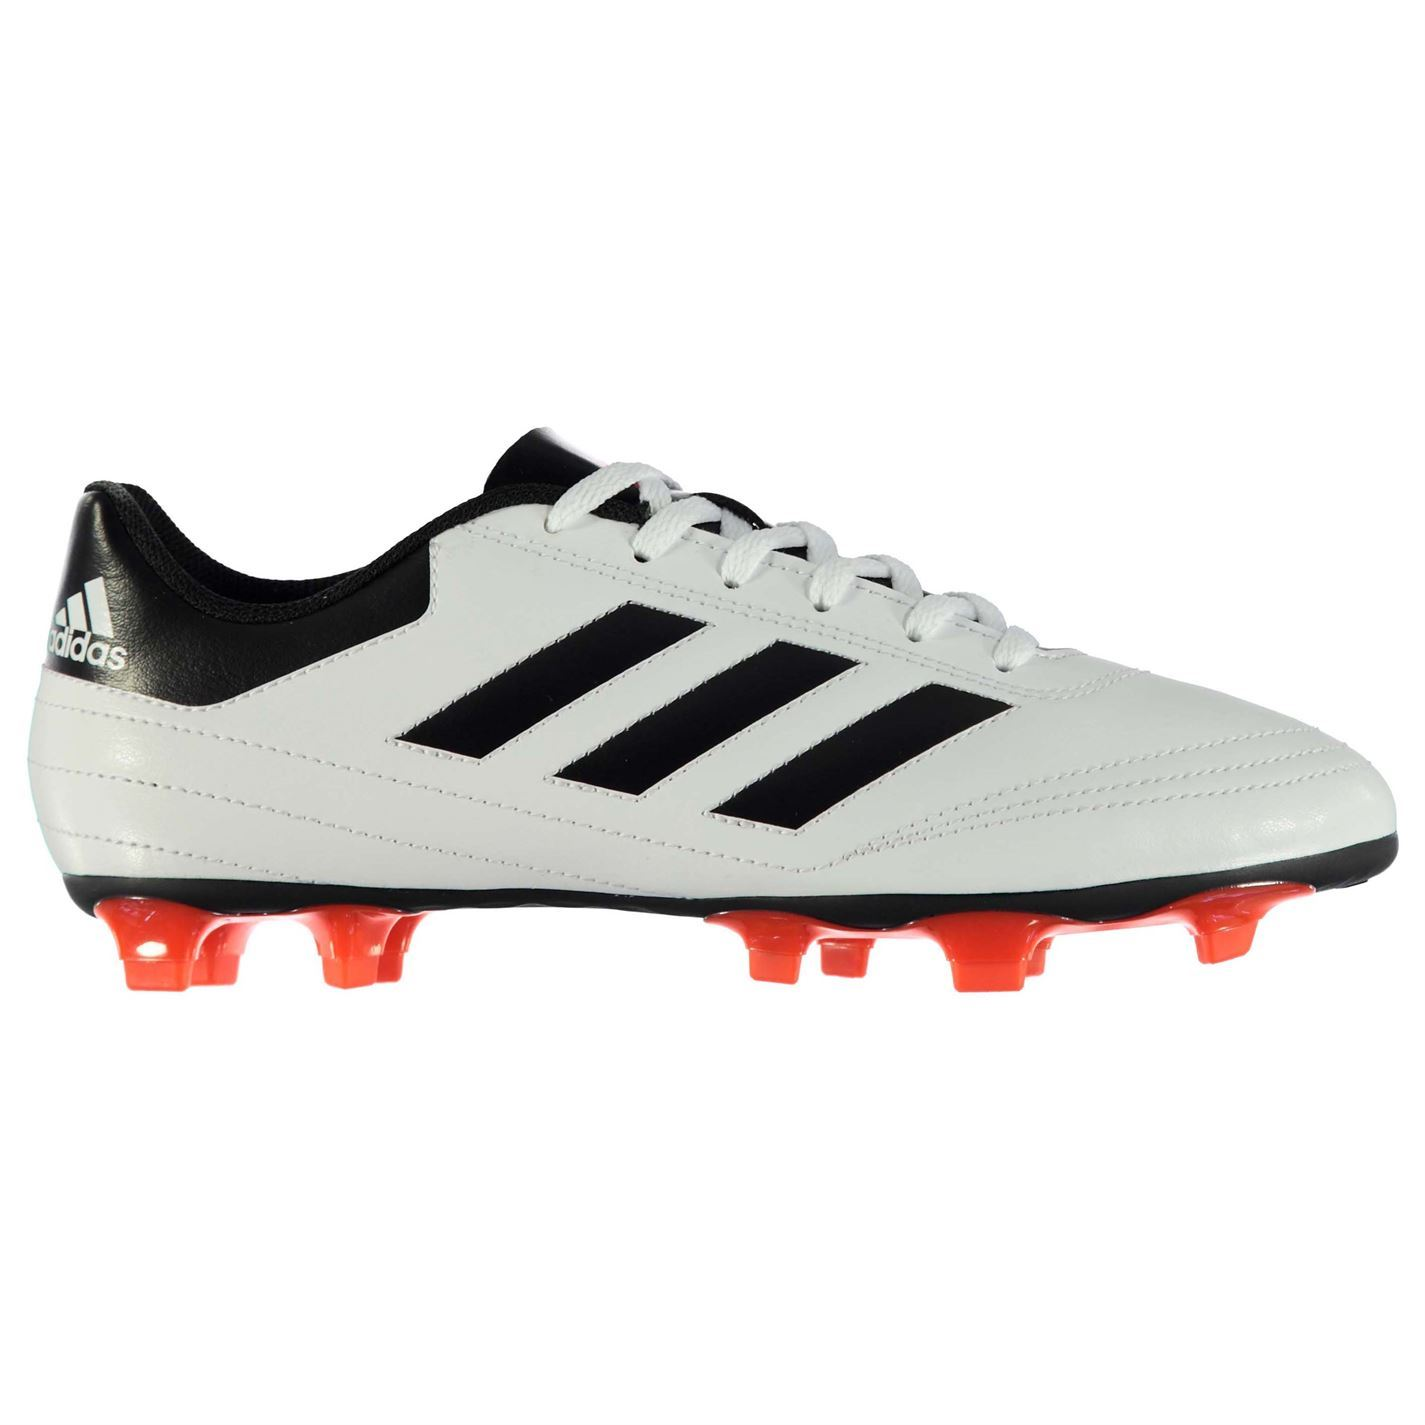 e142ed4f4 adidas Goletto FG Firm Ground Football Boots Mens White Red Soccer Cleats  Shoes